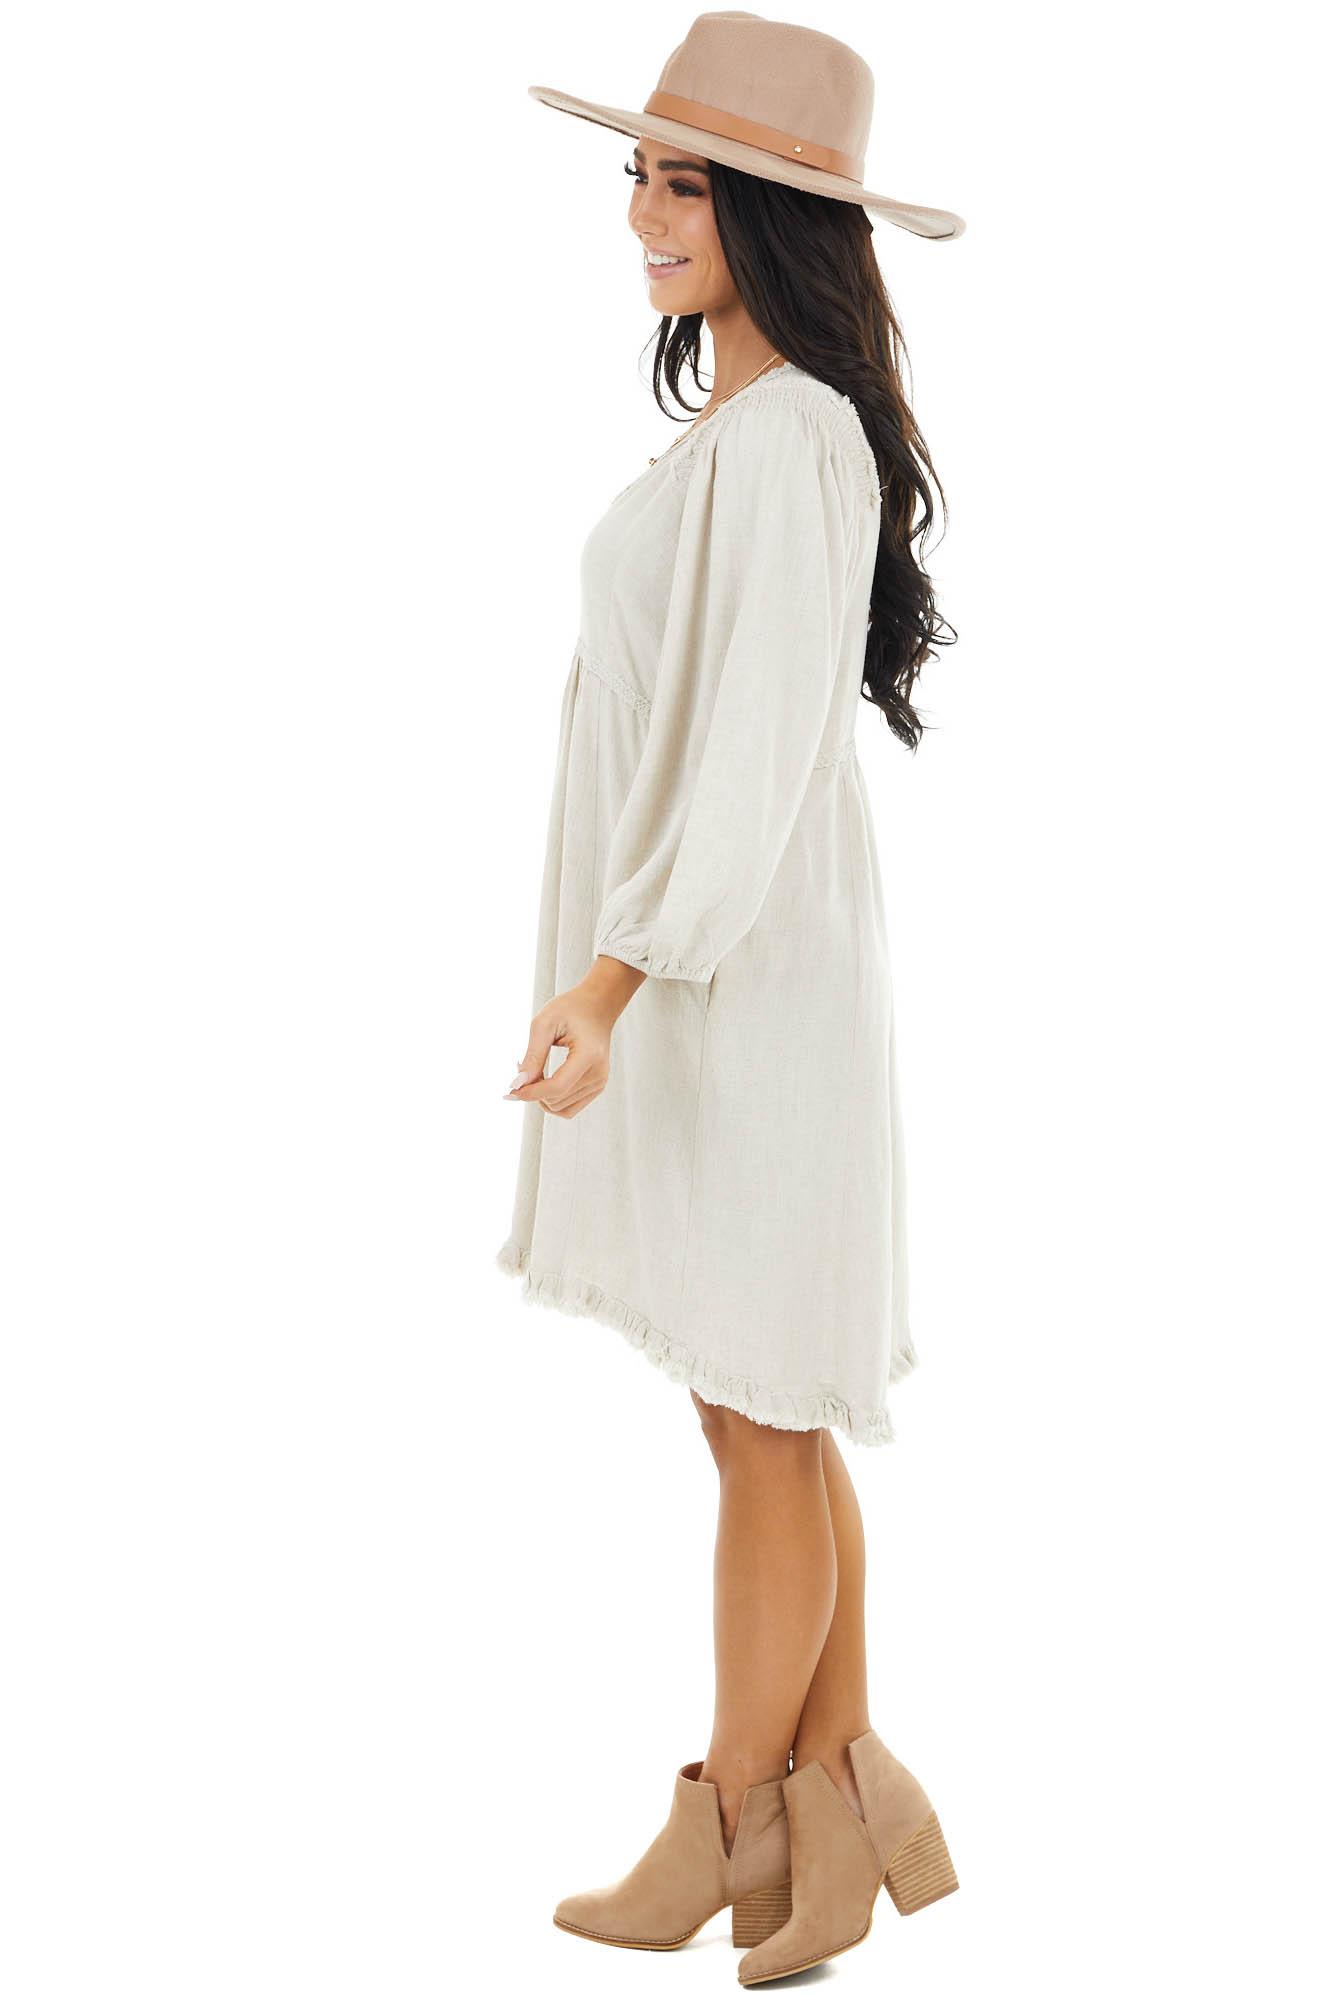 Oatmeal Baby Doll Dress with Bubble Sleeves and Frayed Hem